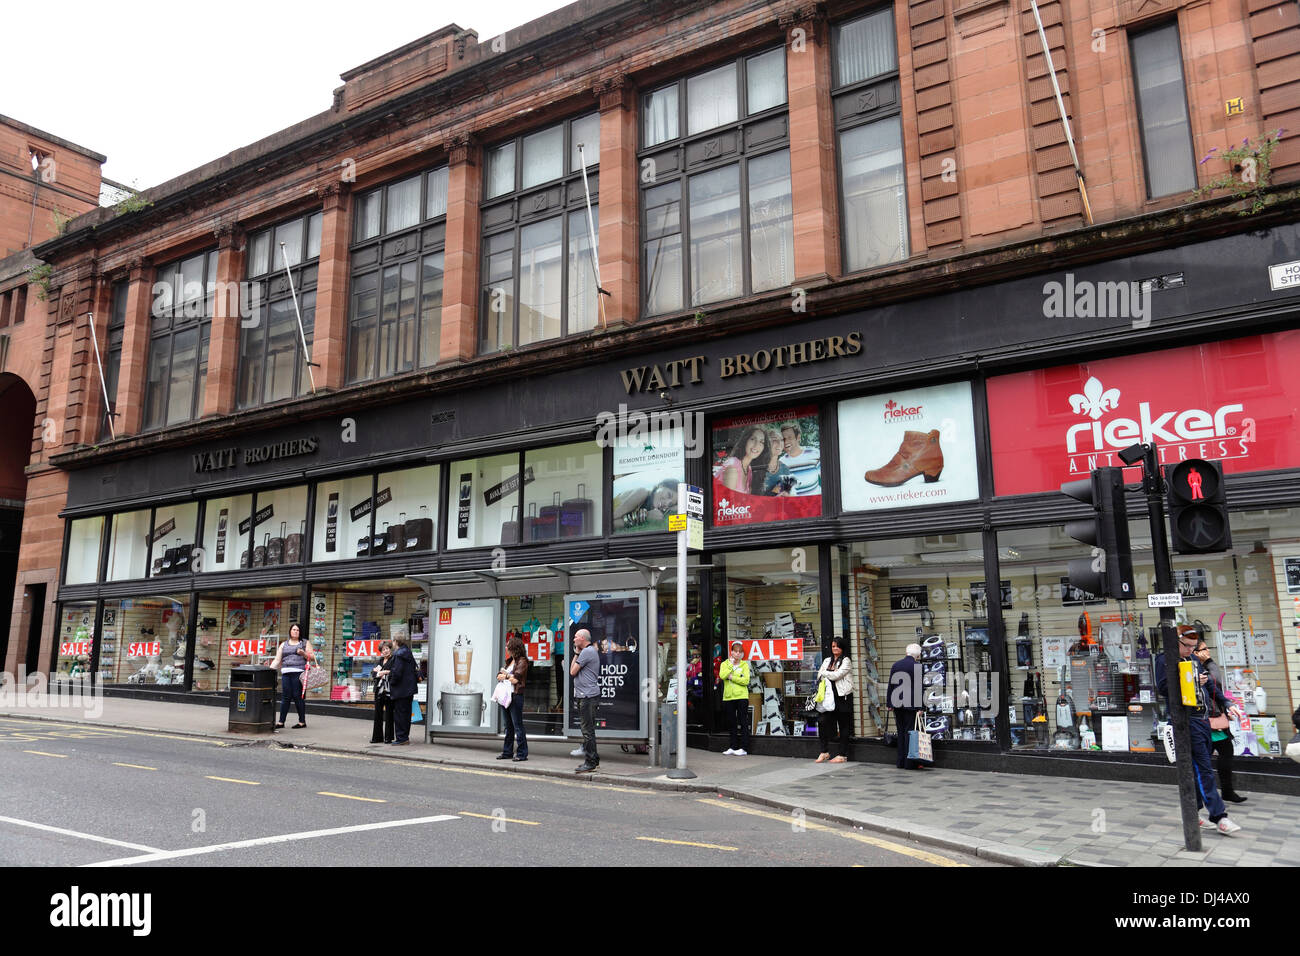 Watt Brothers department store on Hope Street in Glasgow city centre, Scotland, UK - Stock Image